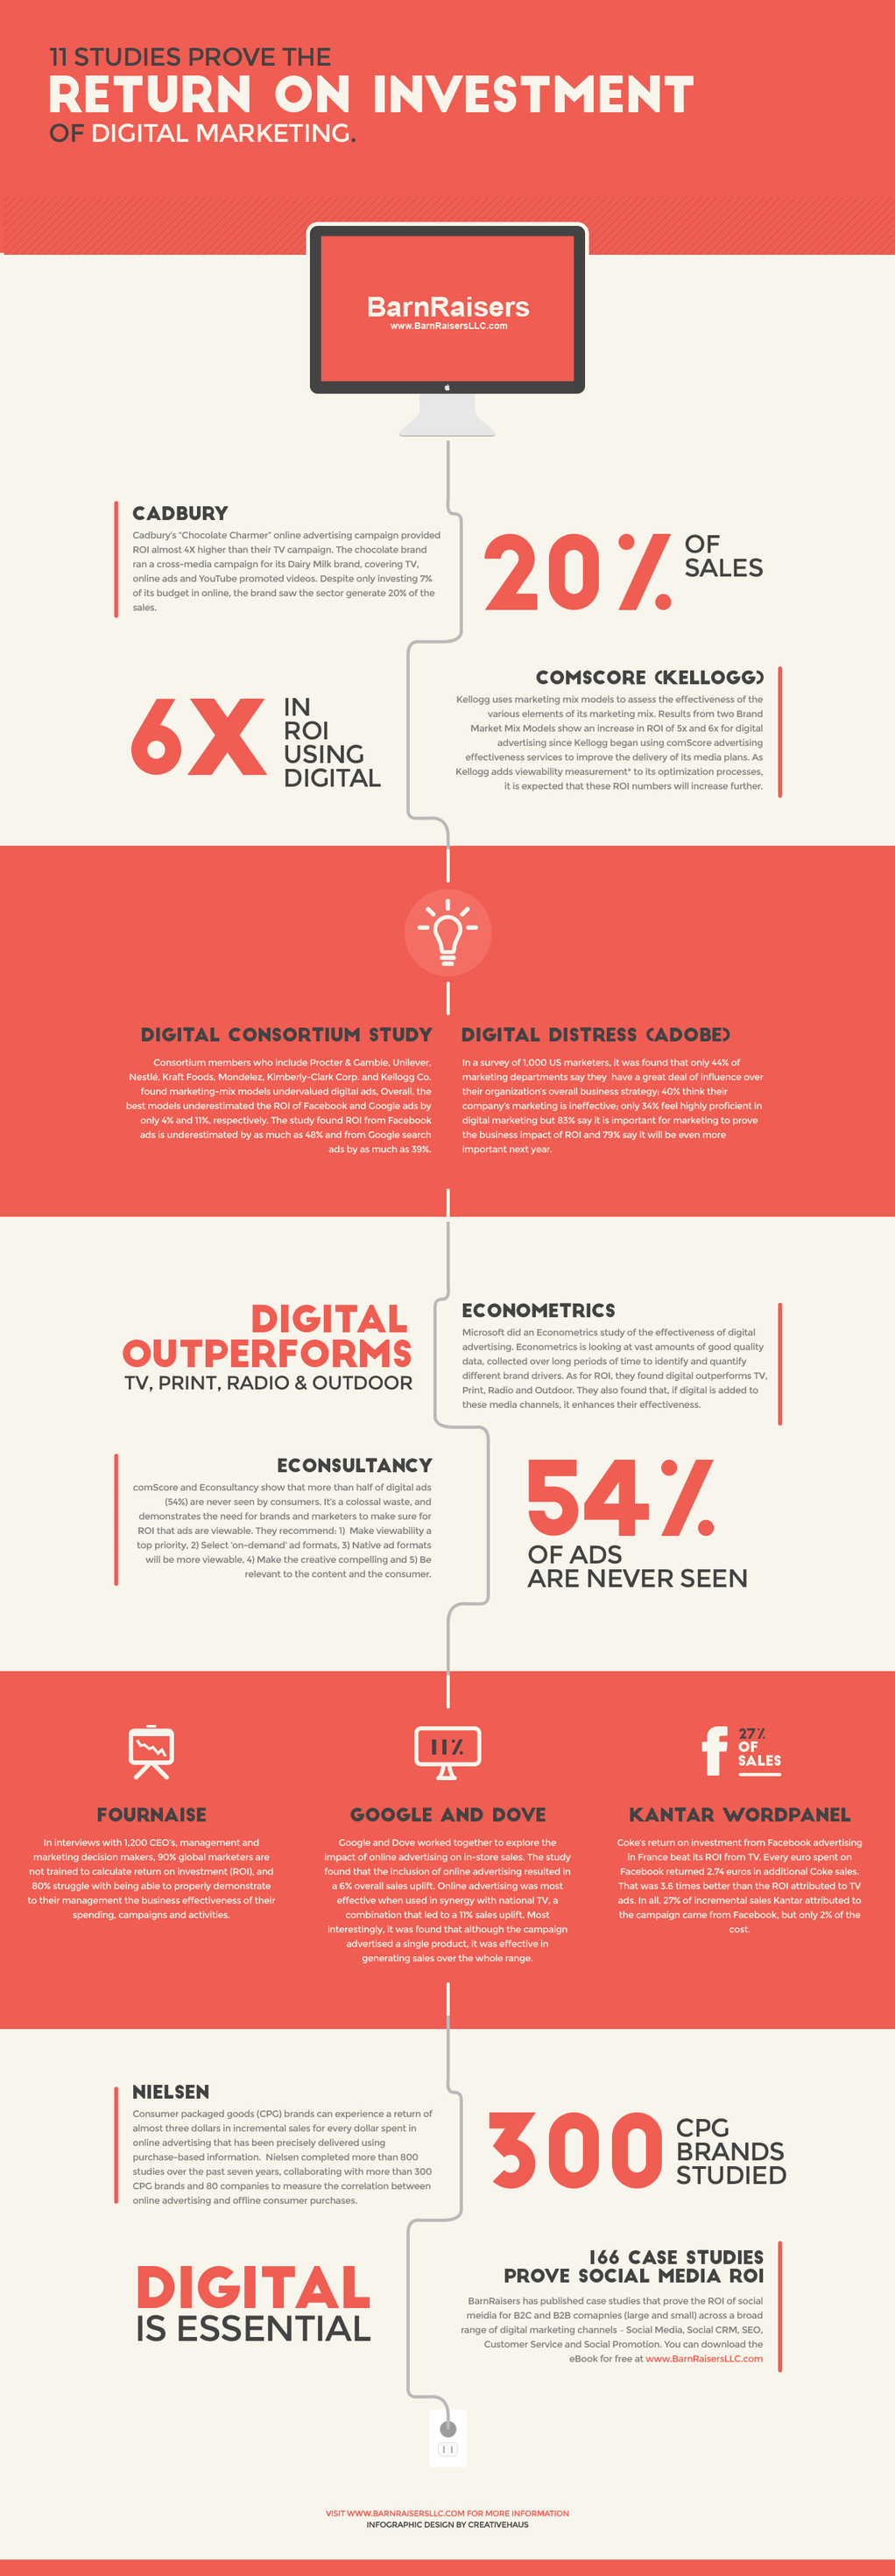 Digital Marketing ROI Infographic